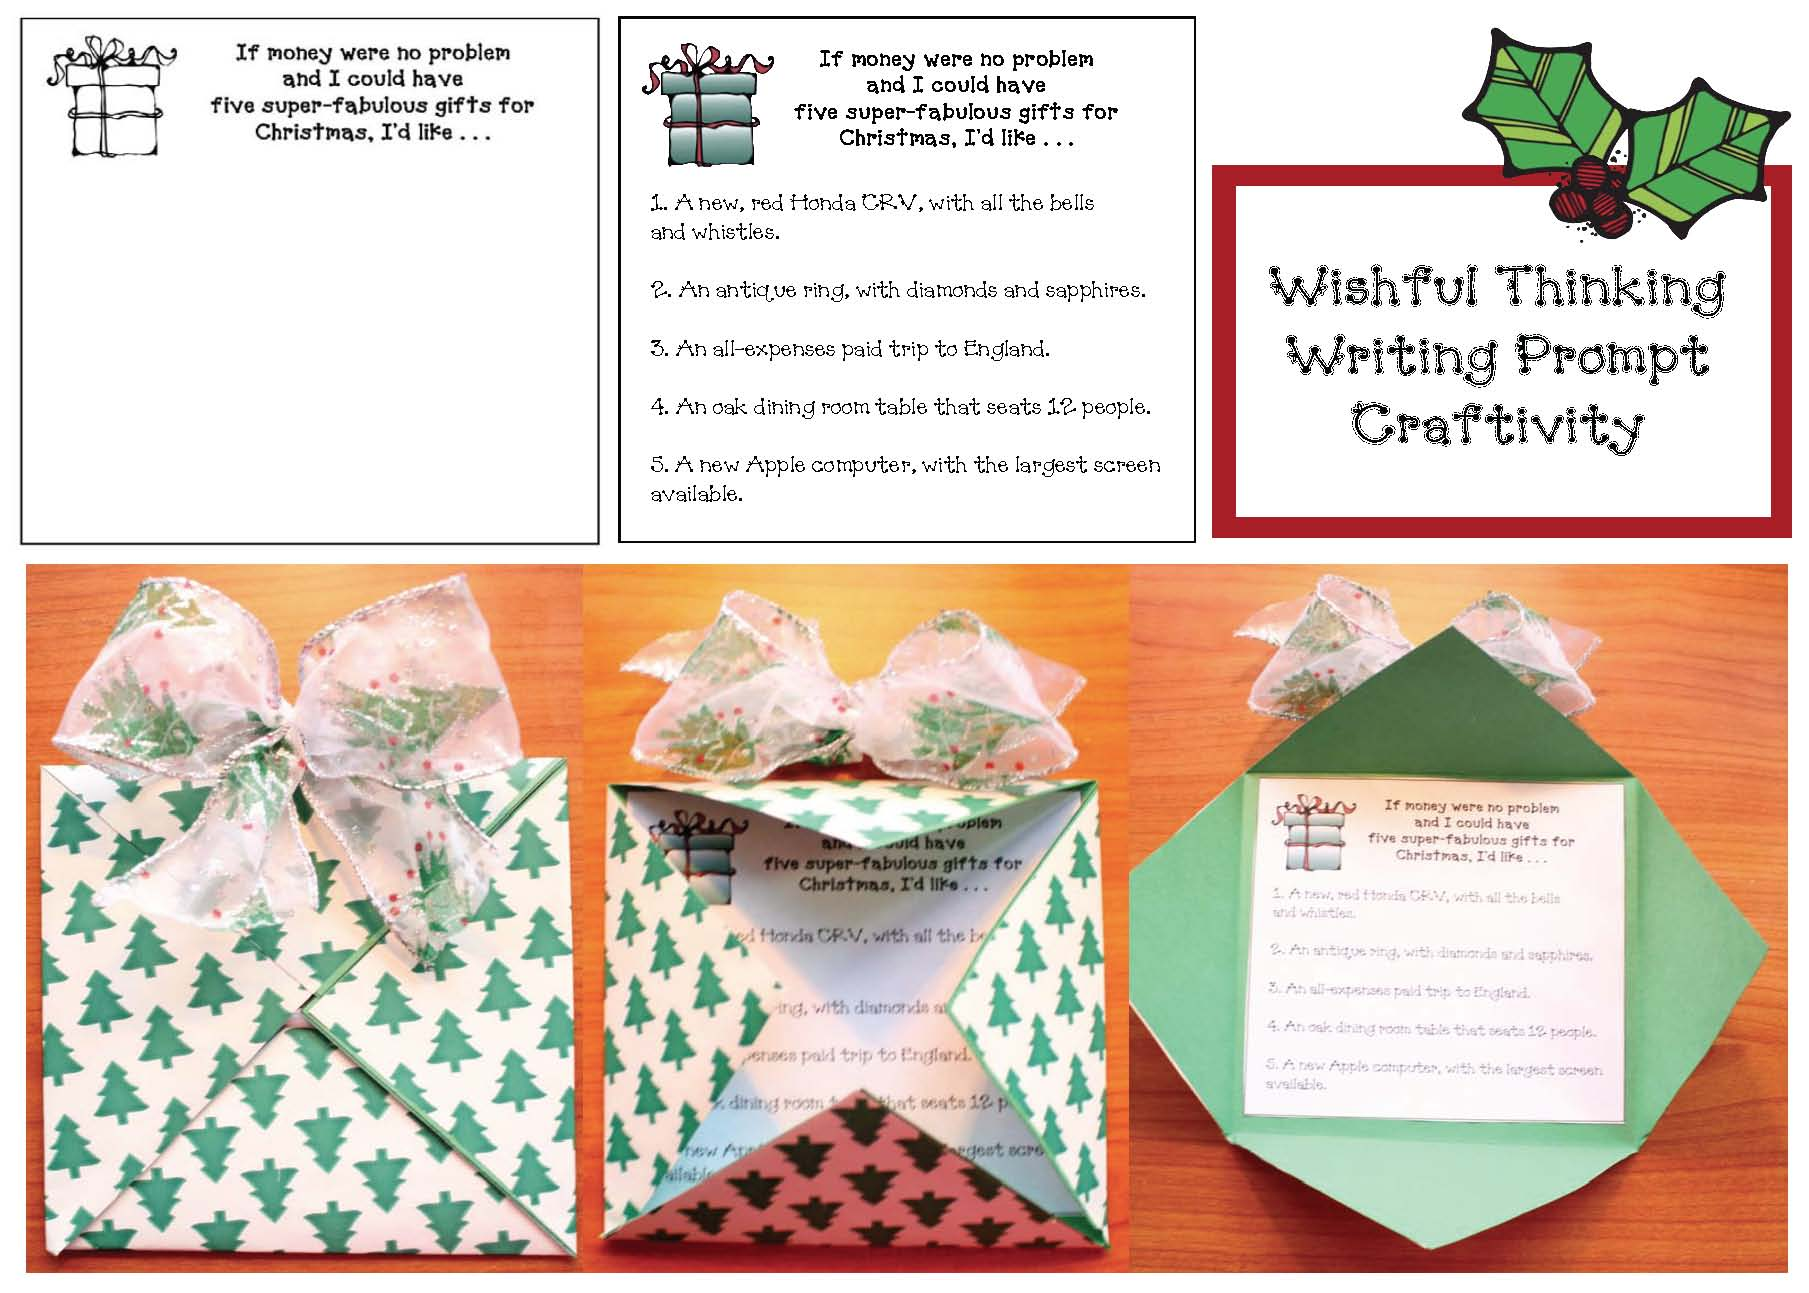 December writing prompts, Christmas crafts, Christmas writing prompts, December bulletin board ideas